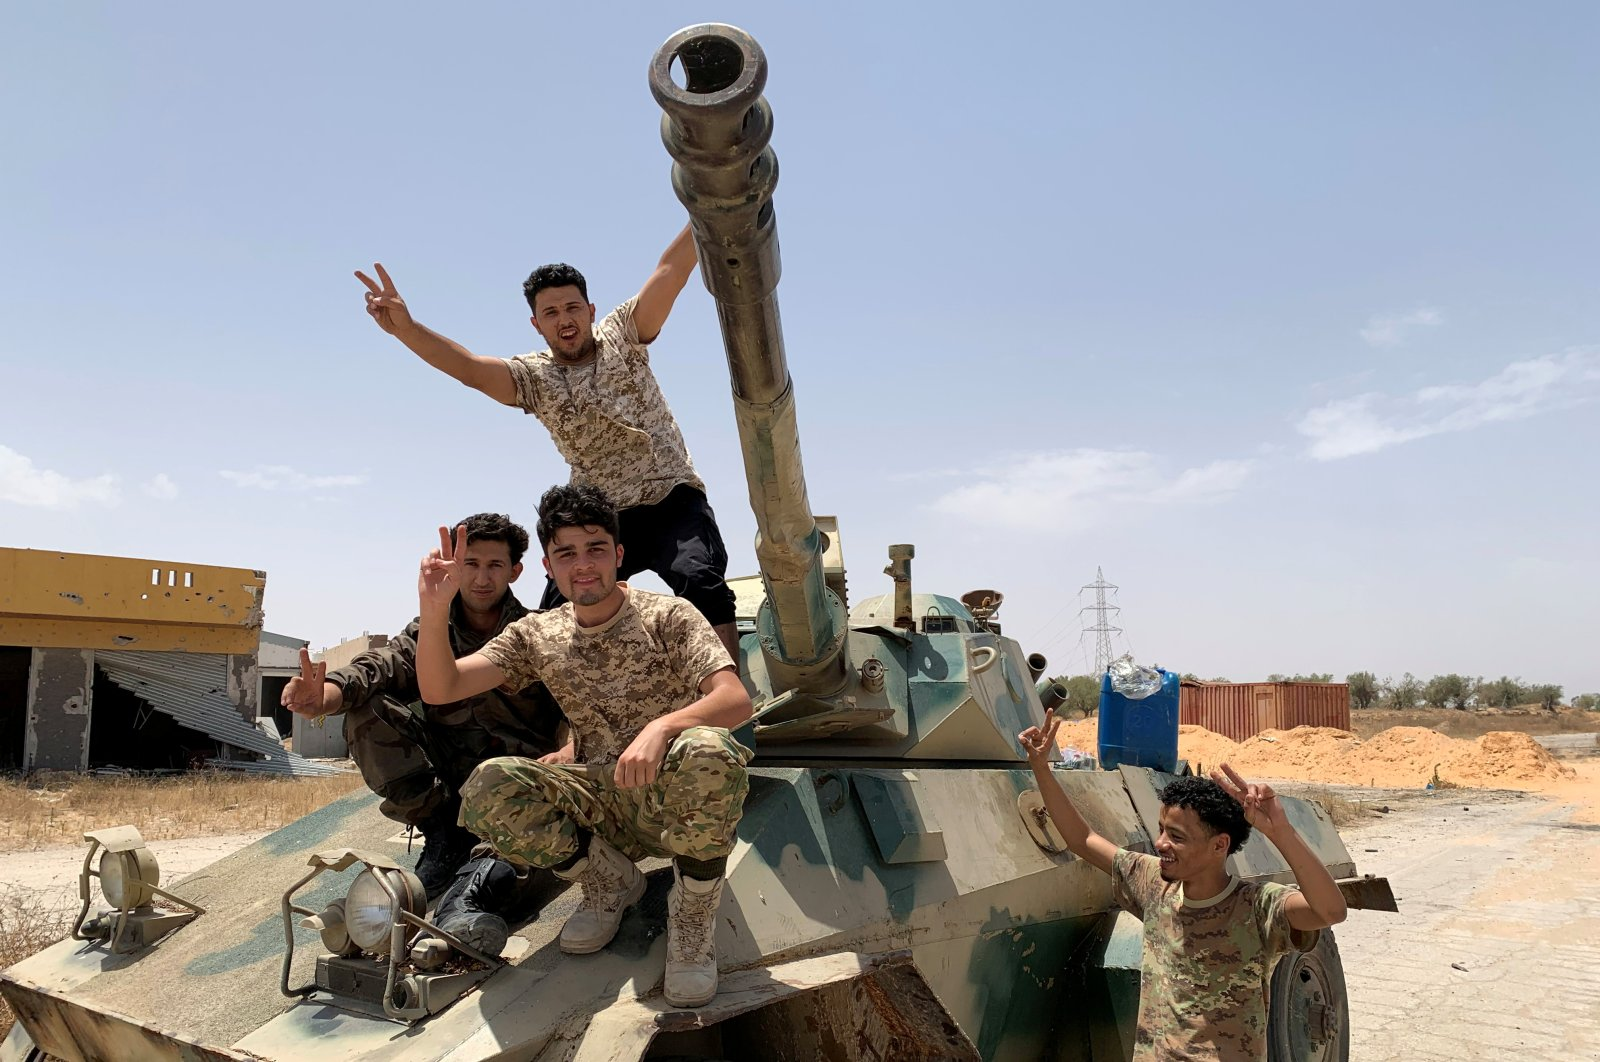 Fighters loyal to Libya's internationally recognized government celebrate after regaining control over the city, in Tripoli, Libya, June 4, 2020. (Reuters File Photo)